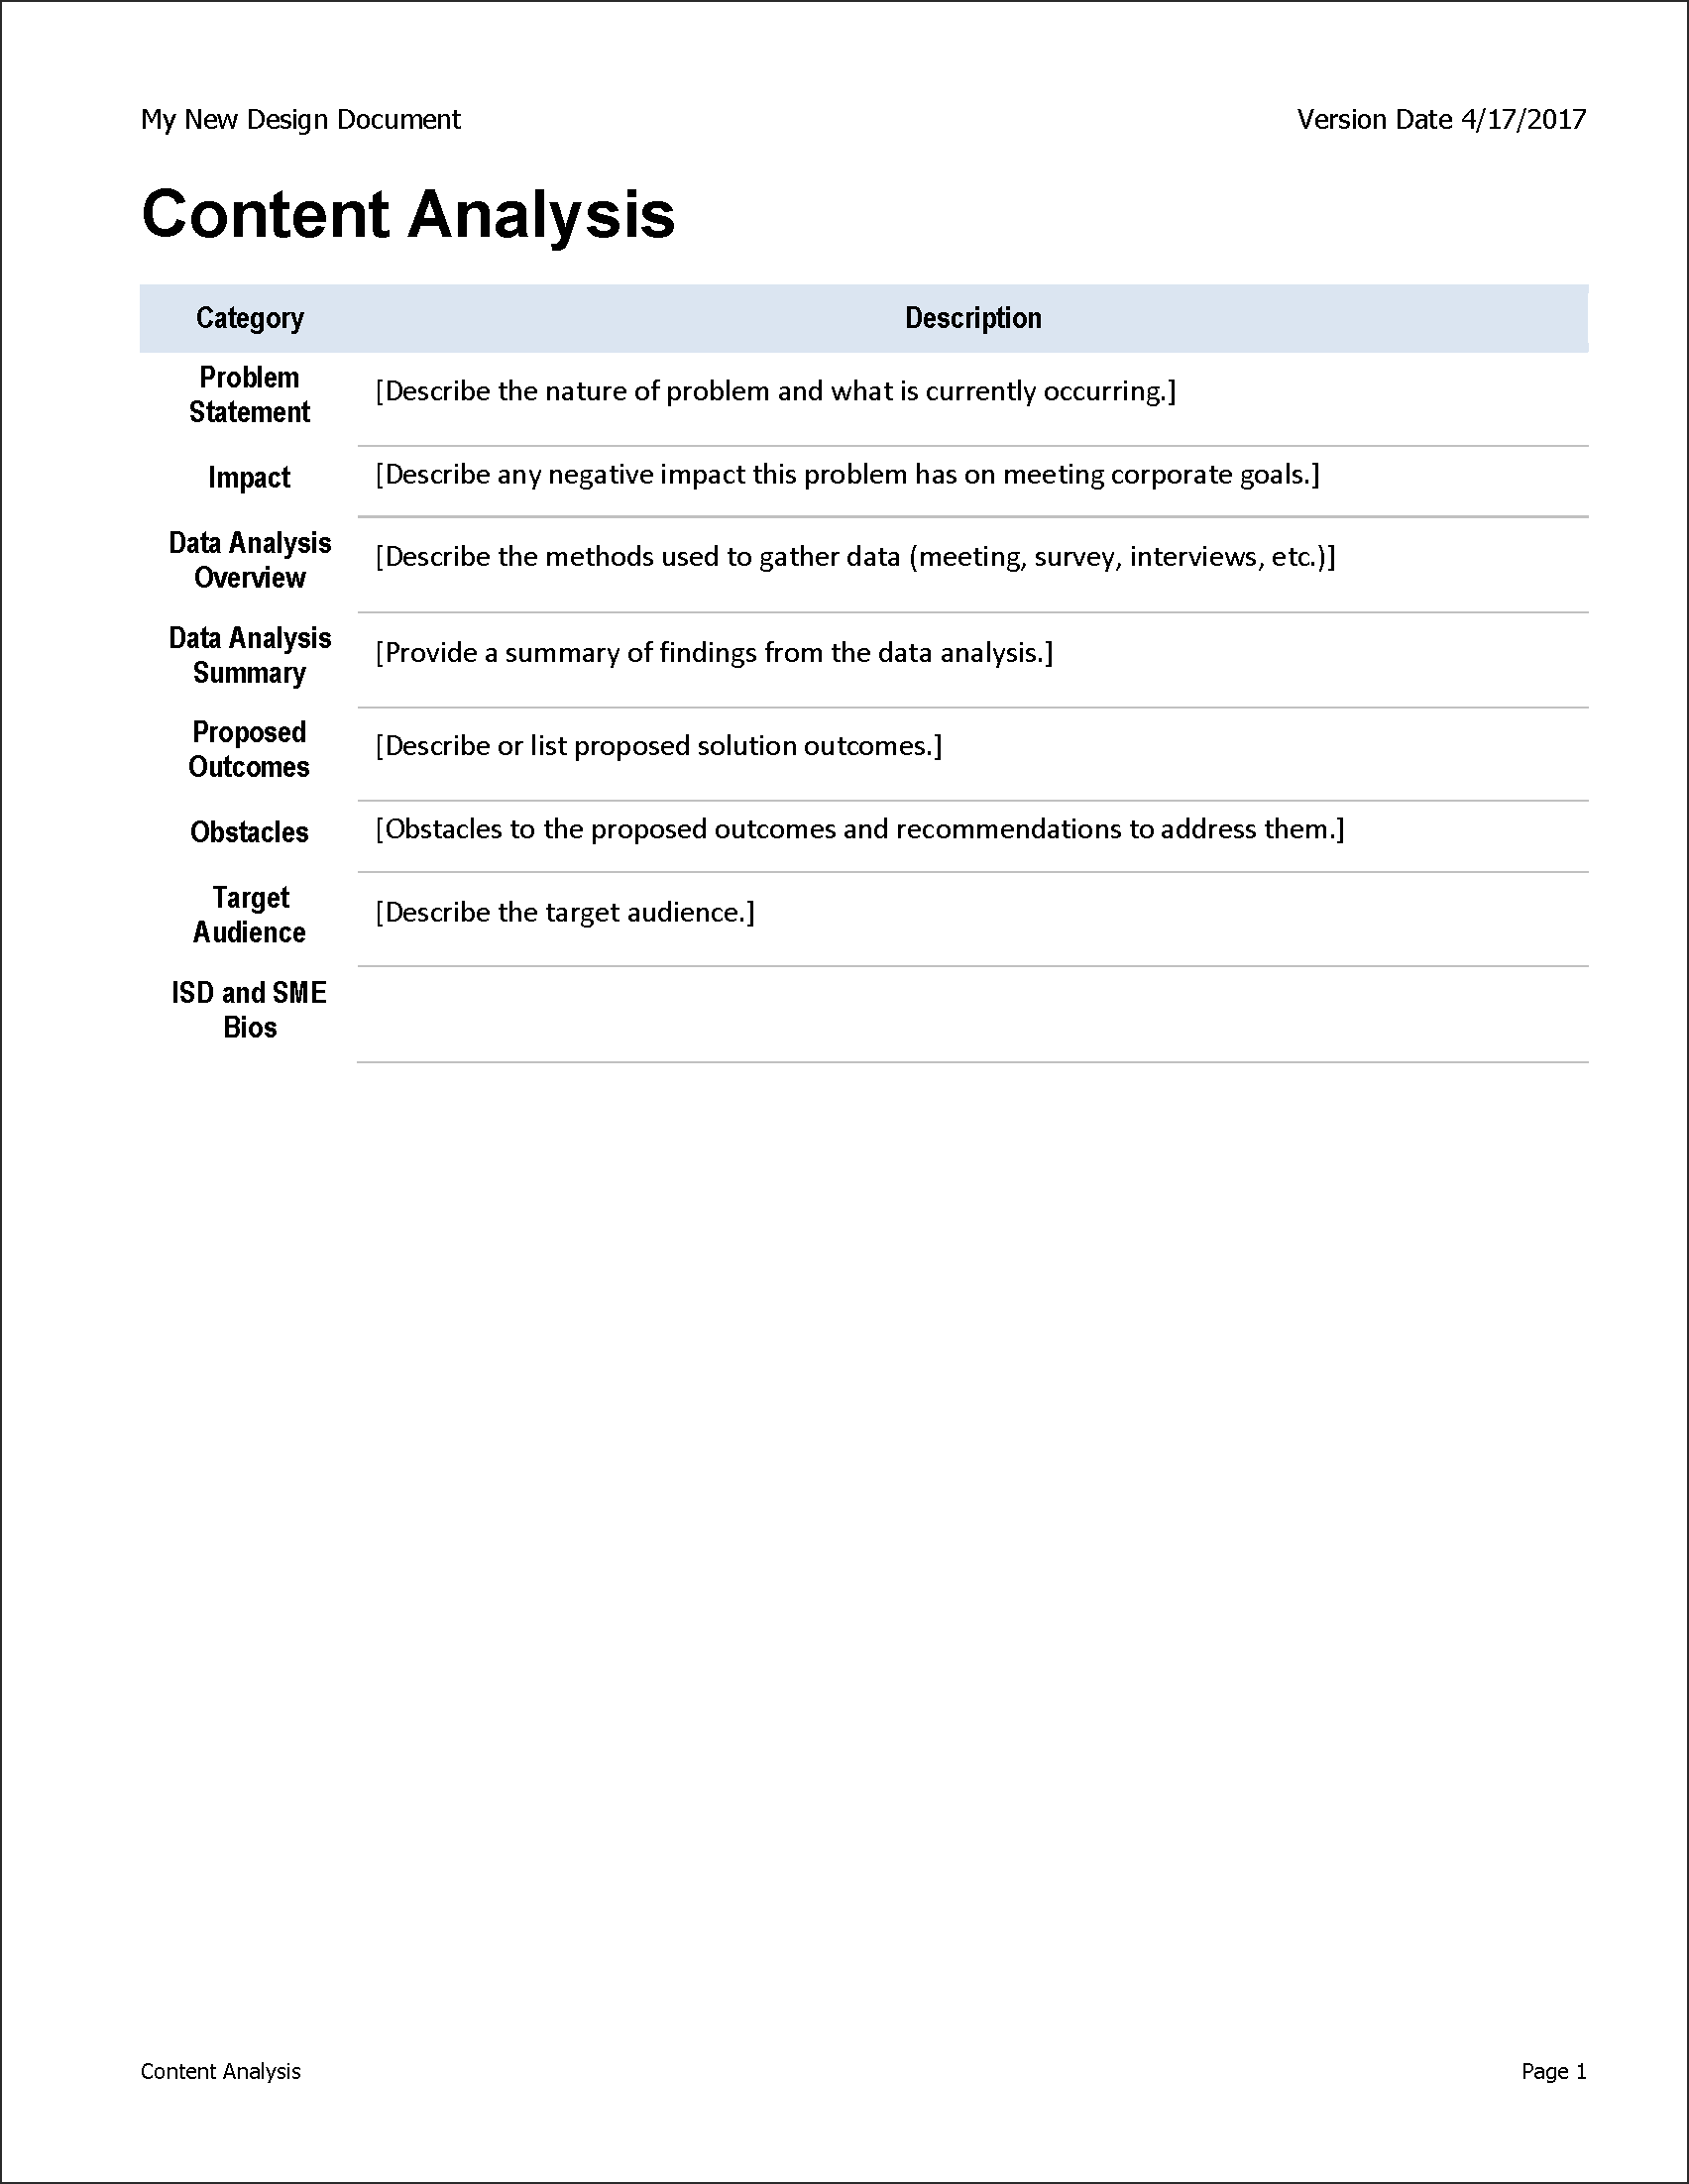 4-17-17-My New Design Document_Page_4.png